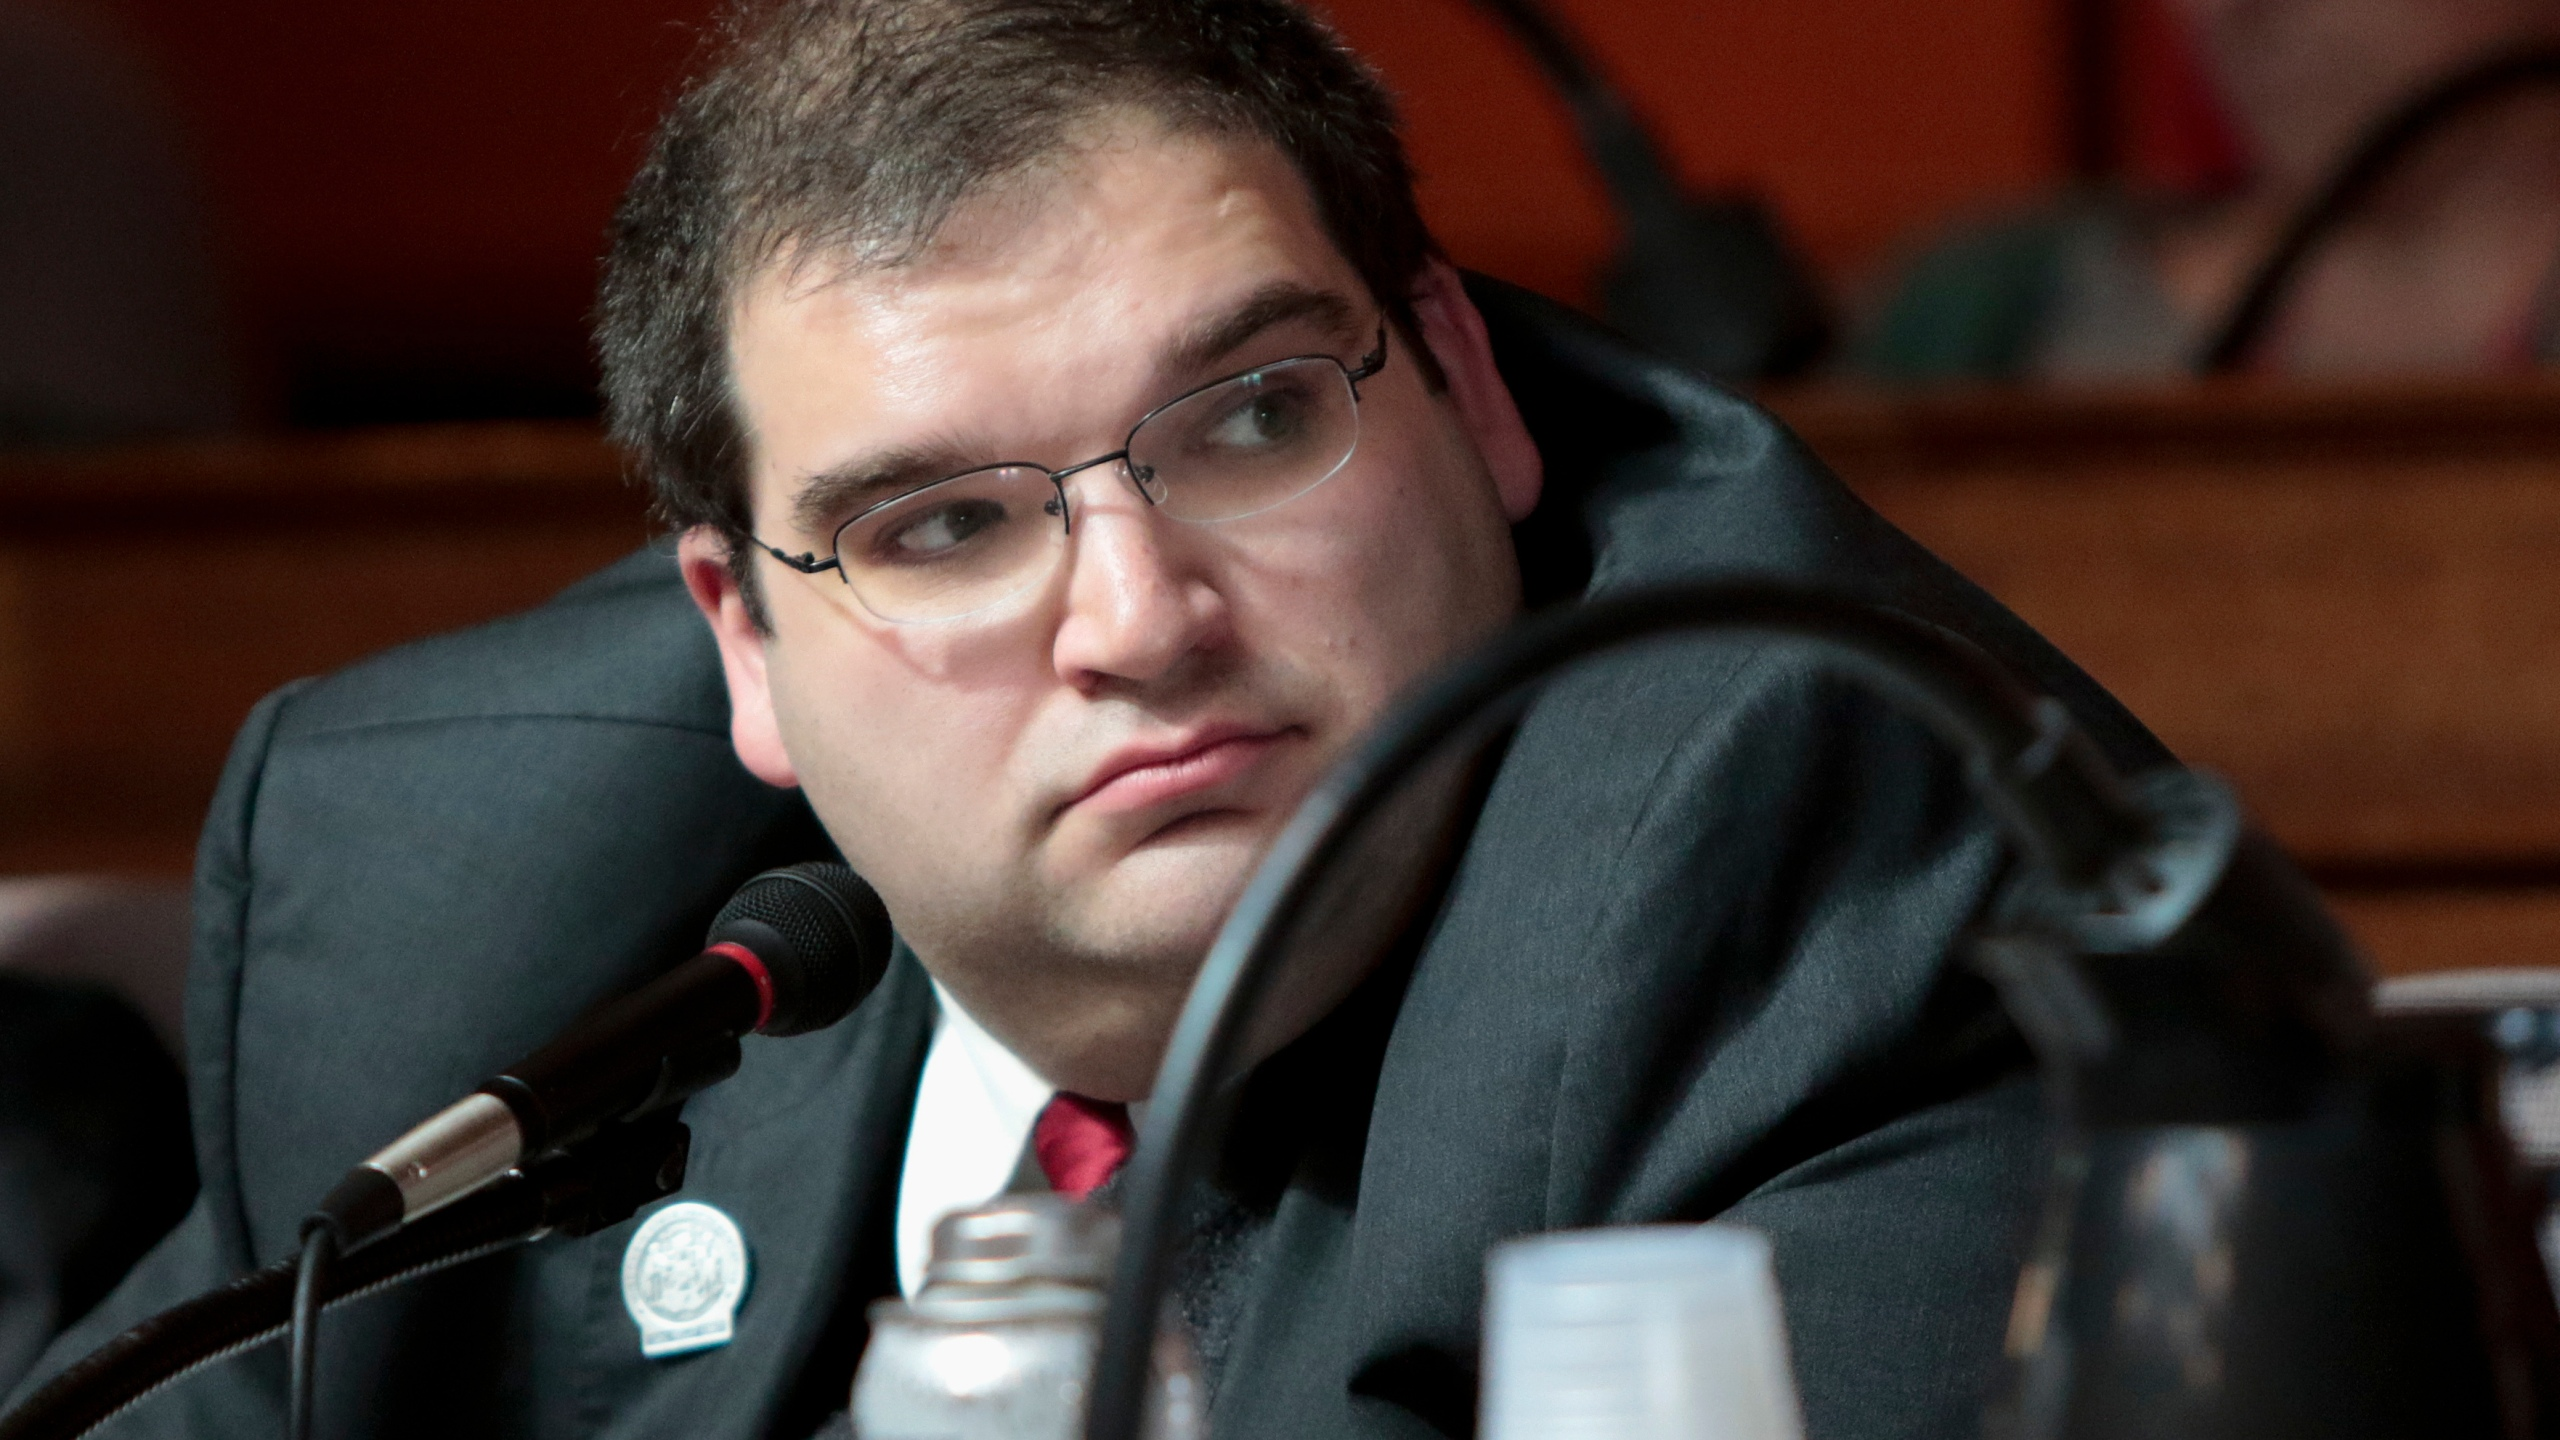 In this March 2, 2015, file photo shows Wisconsin Republican state Rep. Andre Jacques at a labor committee hearing at the State Capitol in Madison, Wis. Jacques, one of the Legislature's most conservative lawmakers and a vocal opponent of mask and vaccine mandates, tested positive for COVID-19 last week and was at the hospital on Monday, Aug. 16, 2021 with pneumonia. (Michael P. King/Wisconsin State Journal via AP, File)